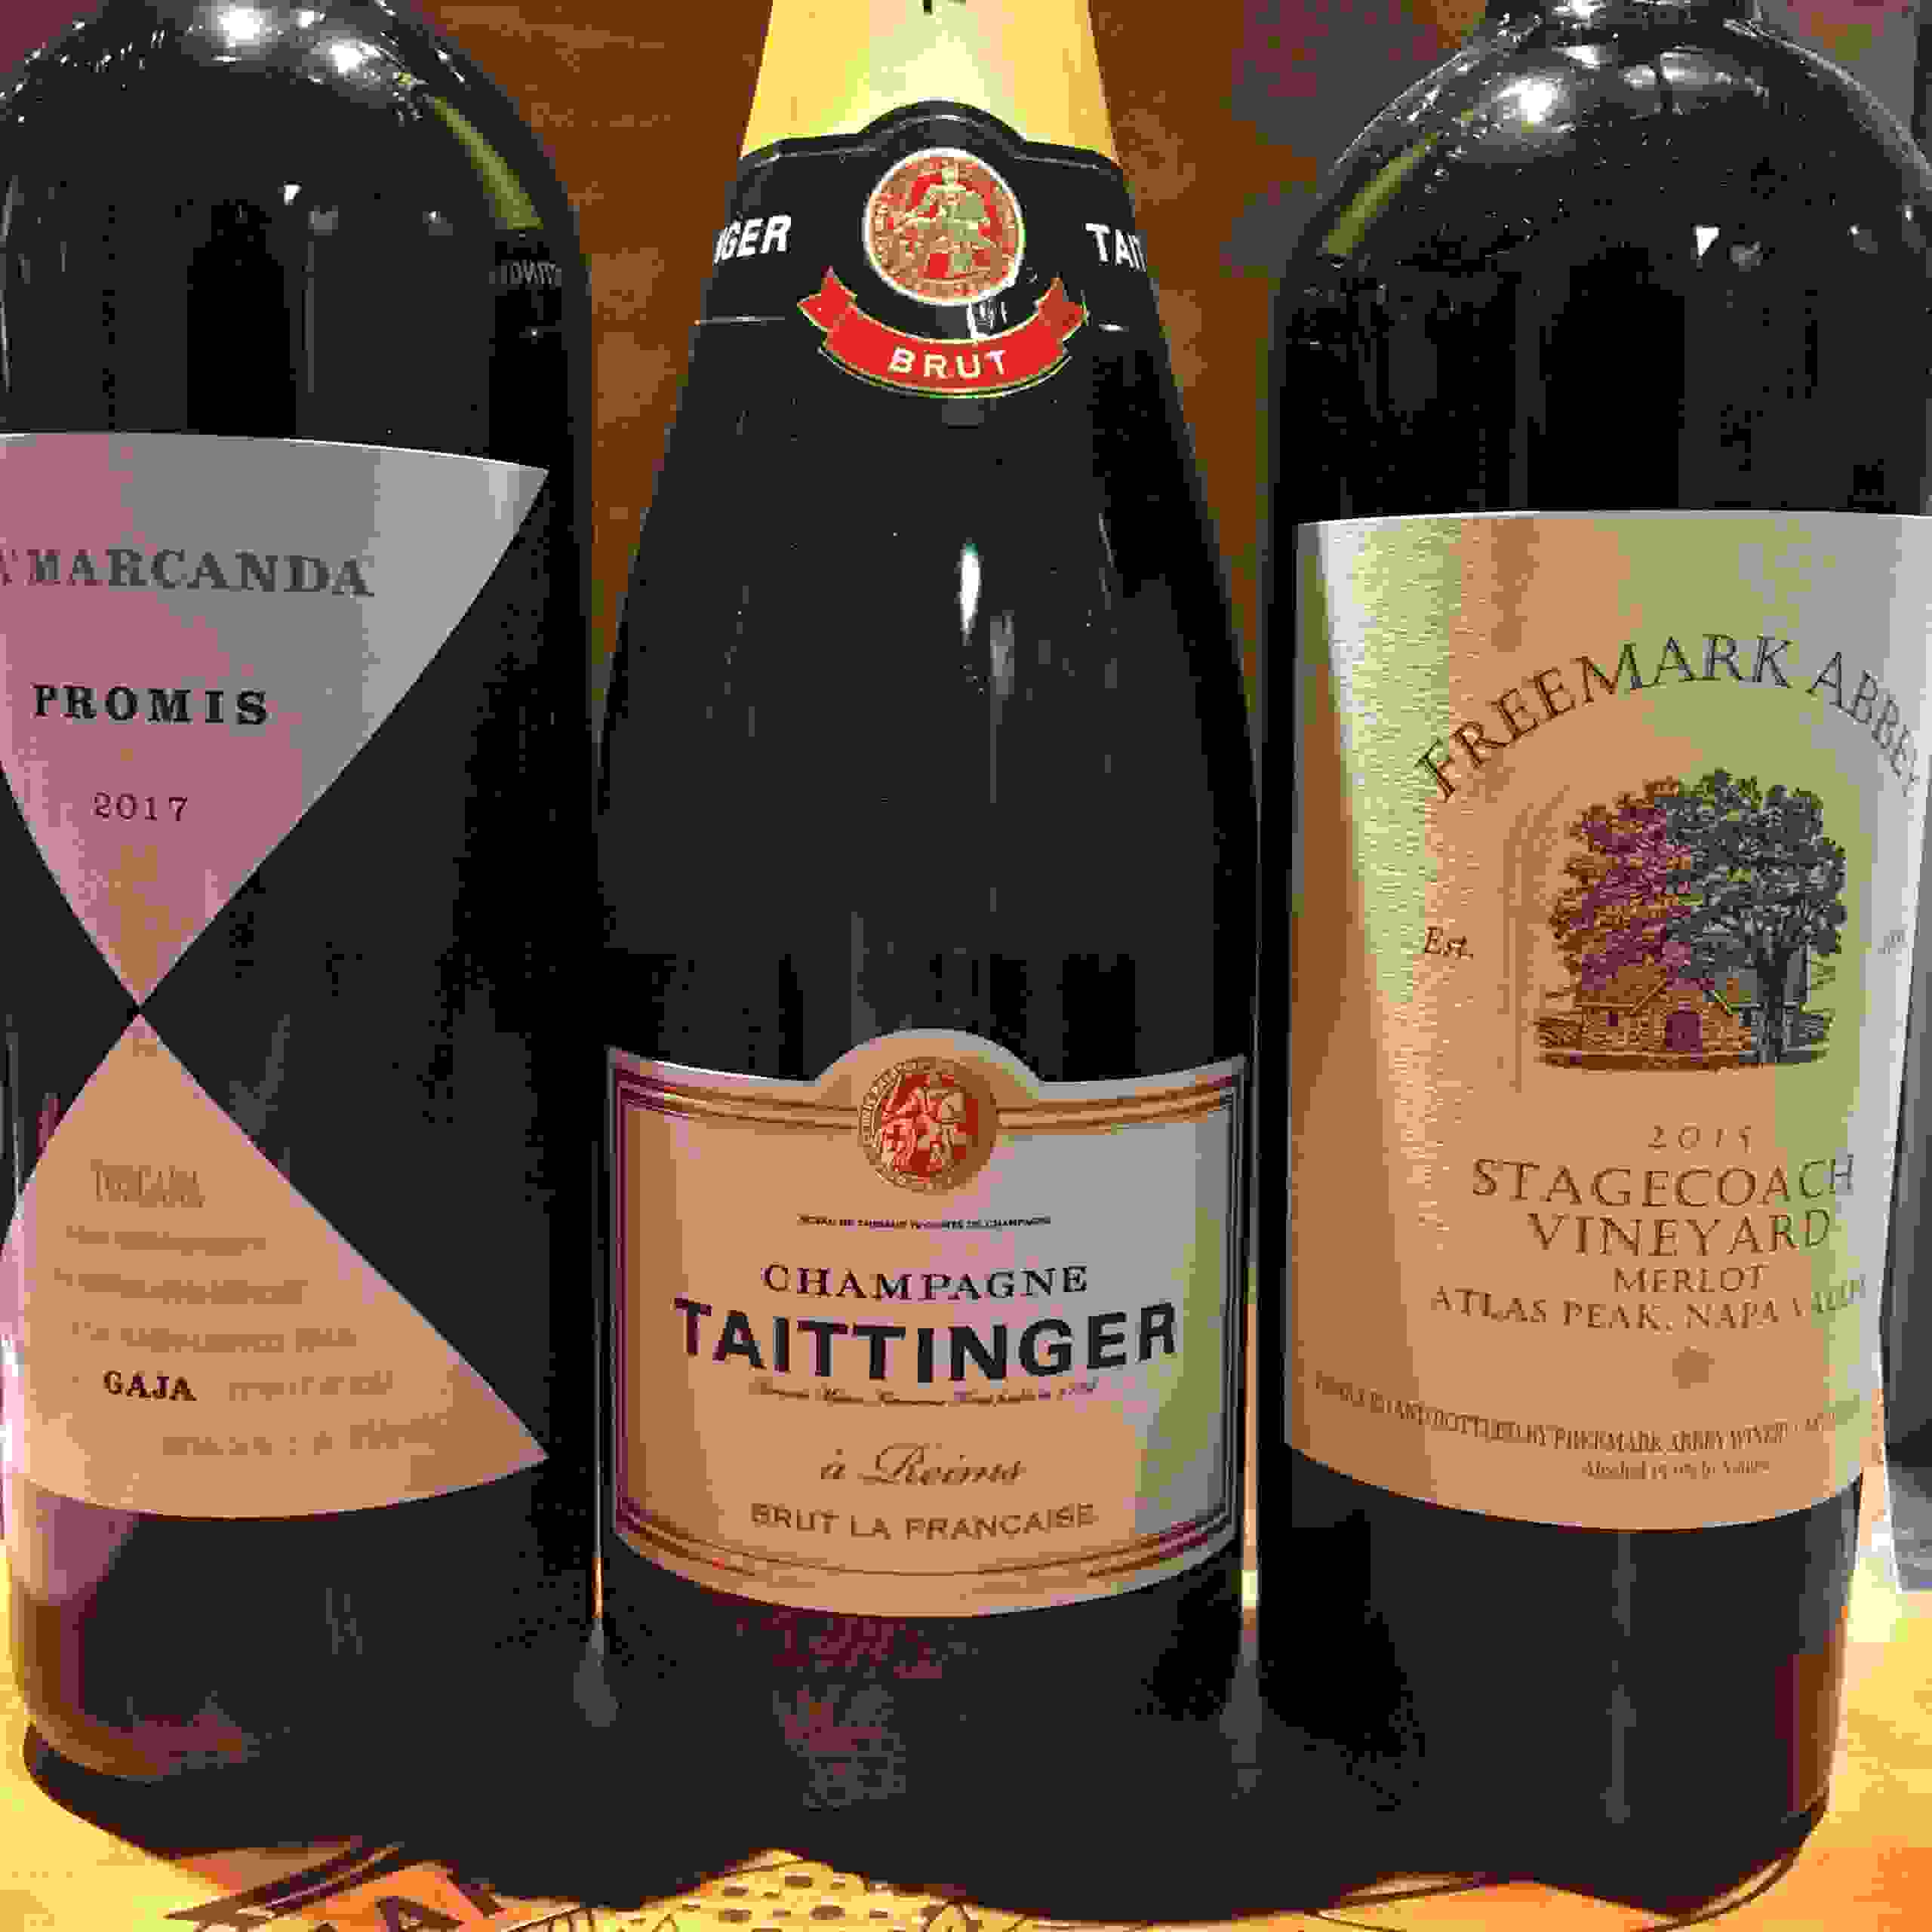 98110 Best wine store shop bainbridge gobble gobble Gaja Taittinger Freemark abbey